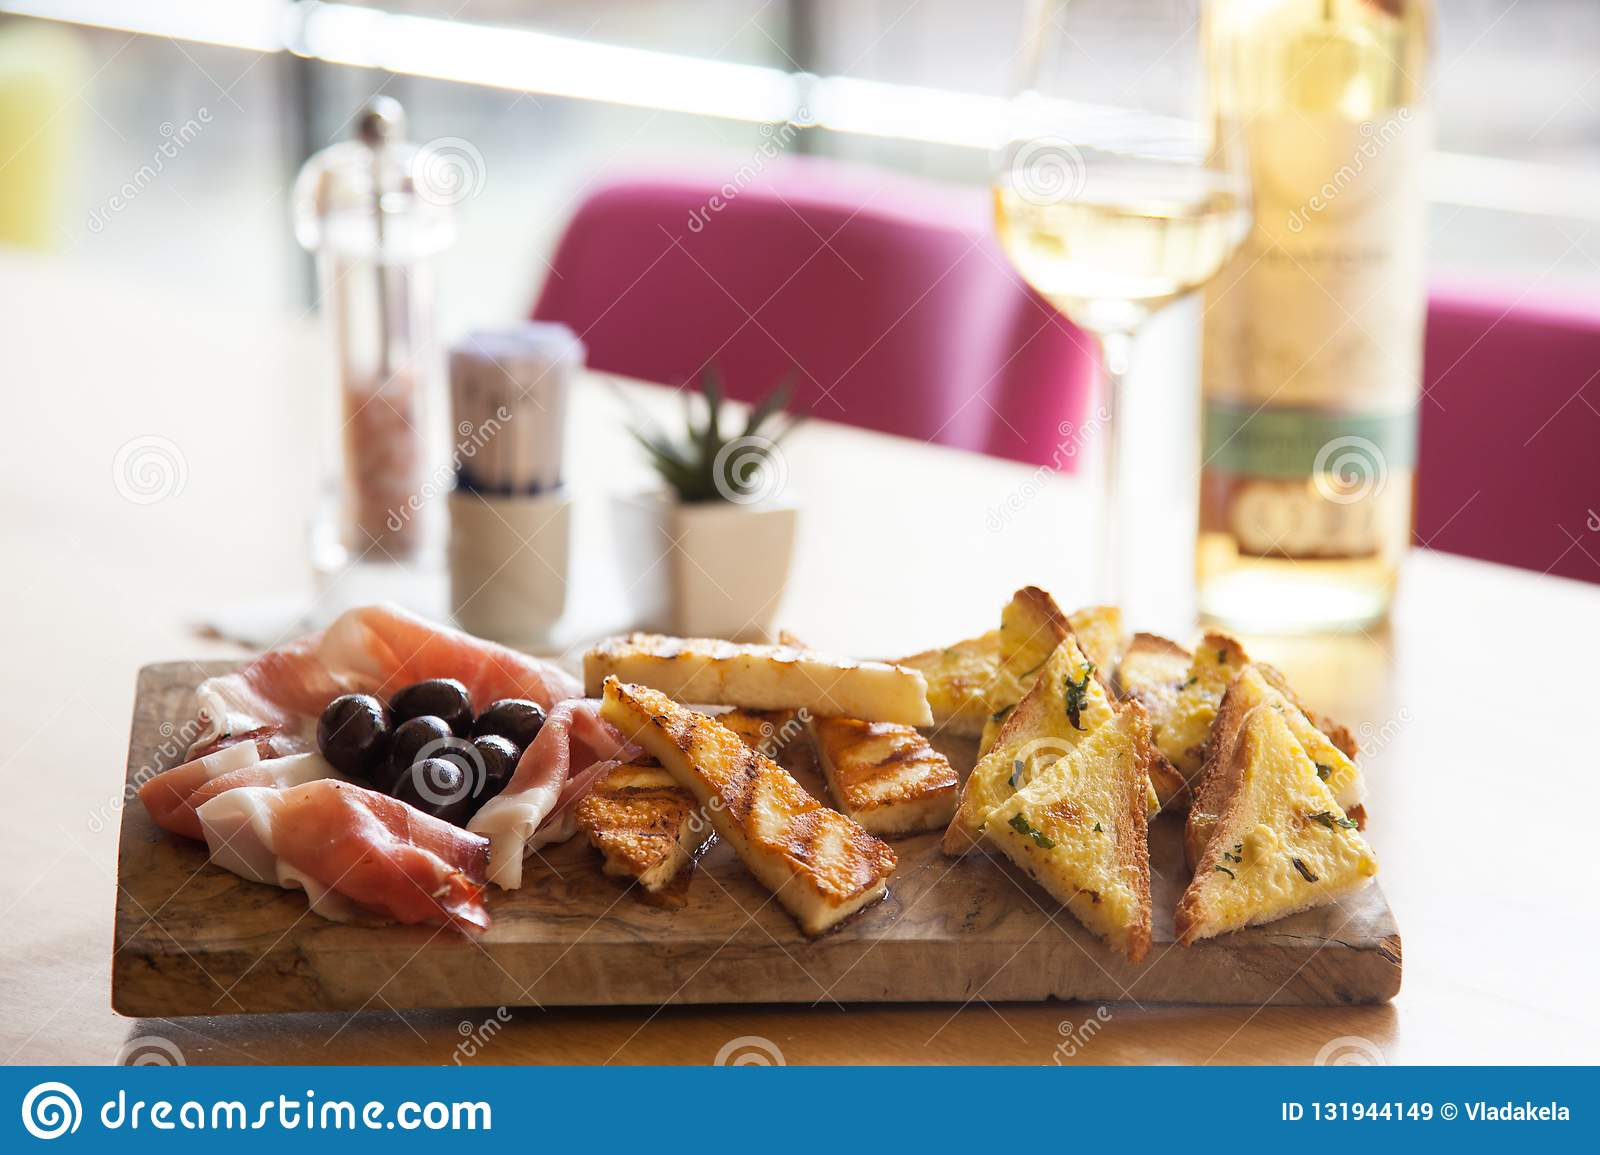 Appetizers table with italian antipasti snacks and wine in glass